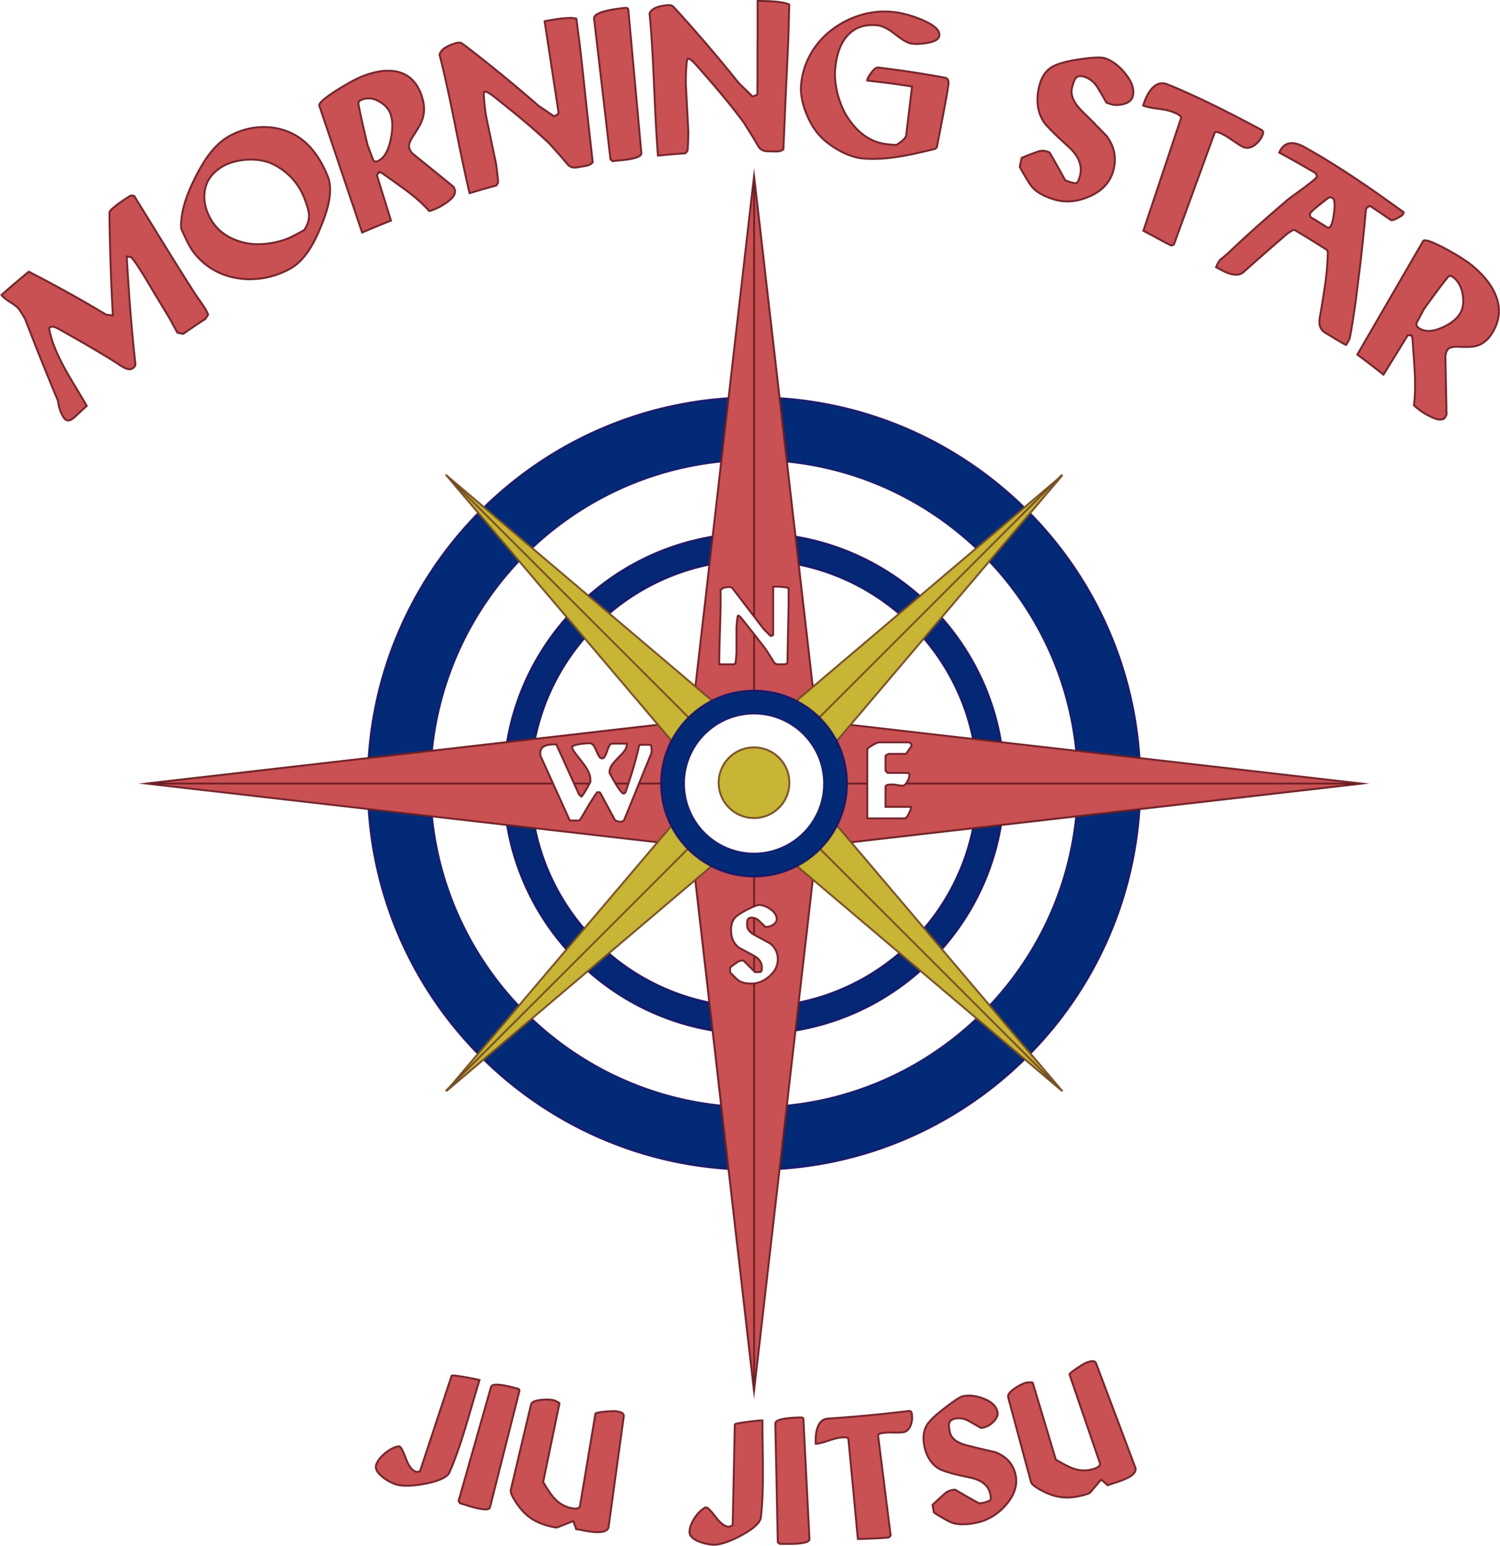 Morning Star Jiu Jitsu